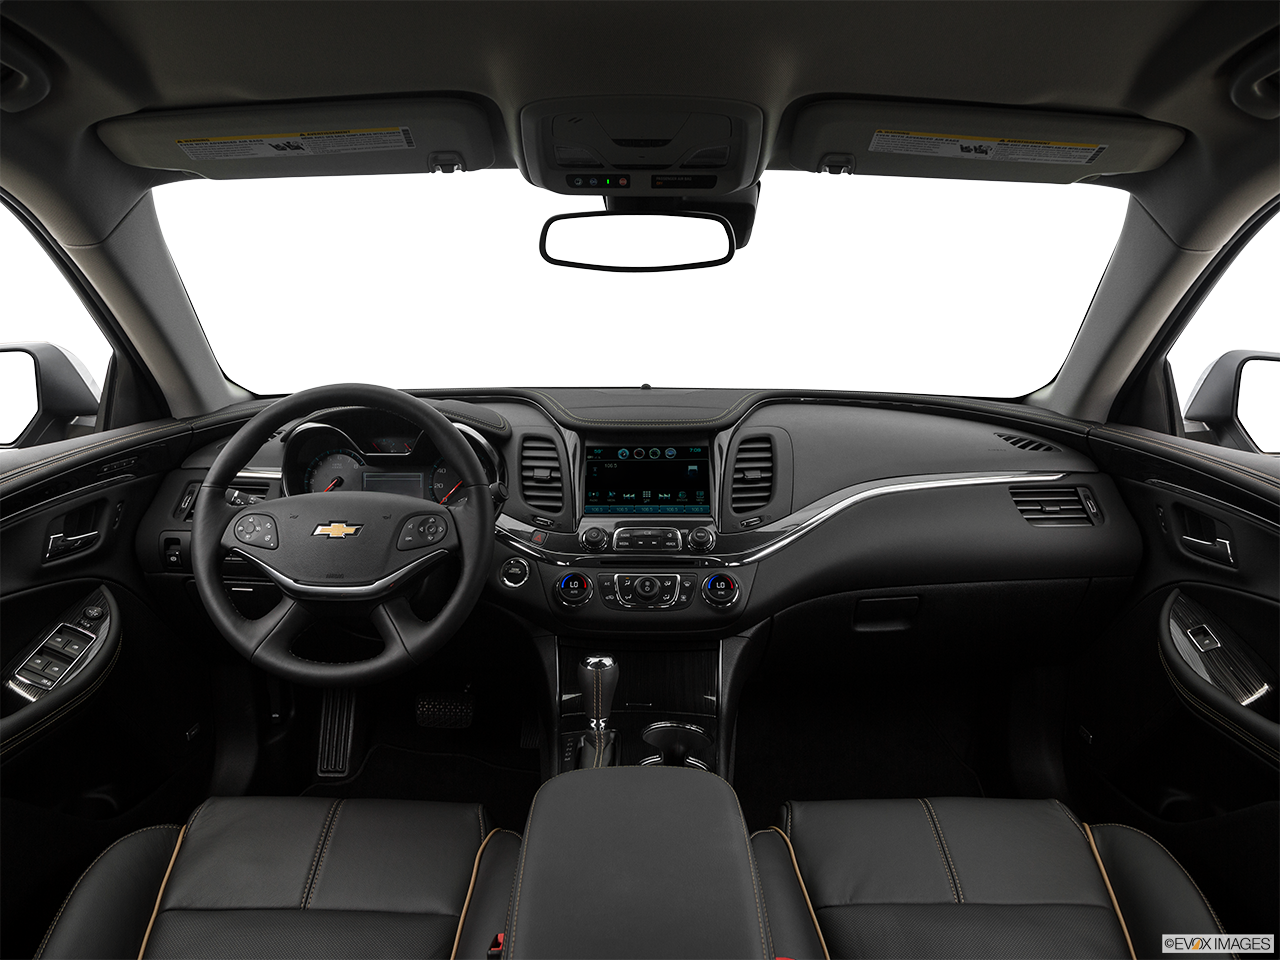 Interior View Of 2017 Chevrolet Impala In Newport News